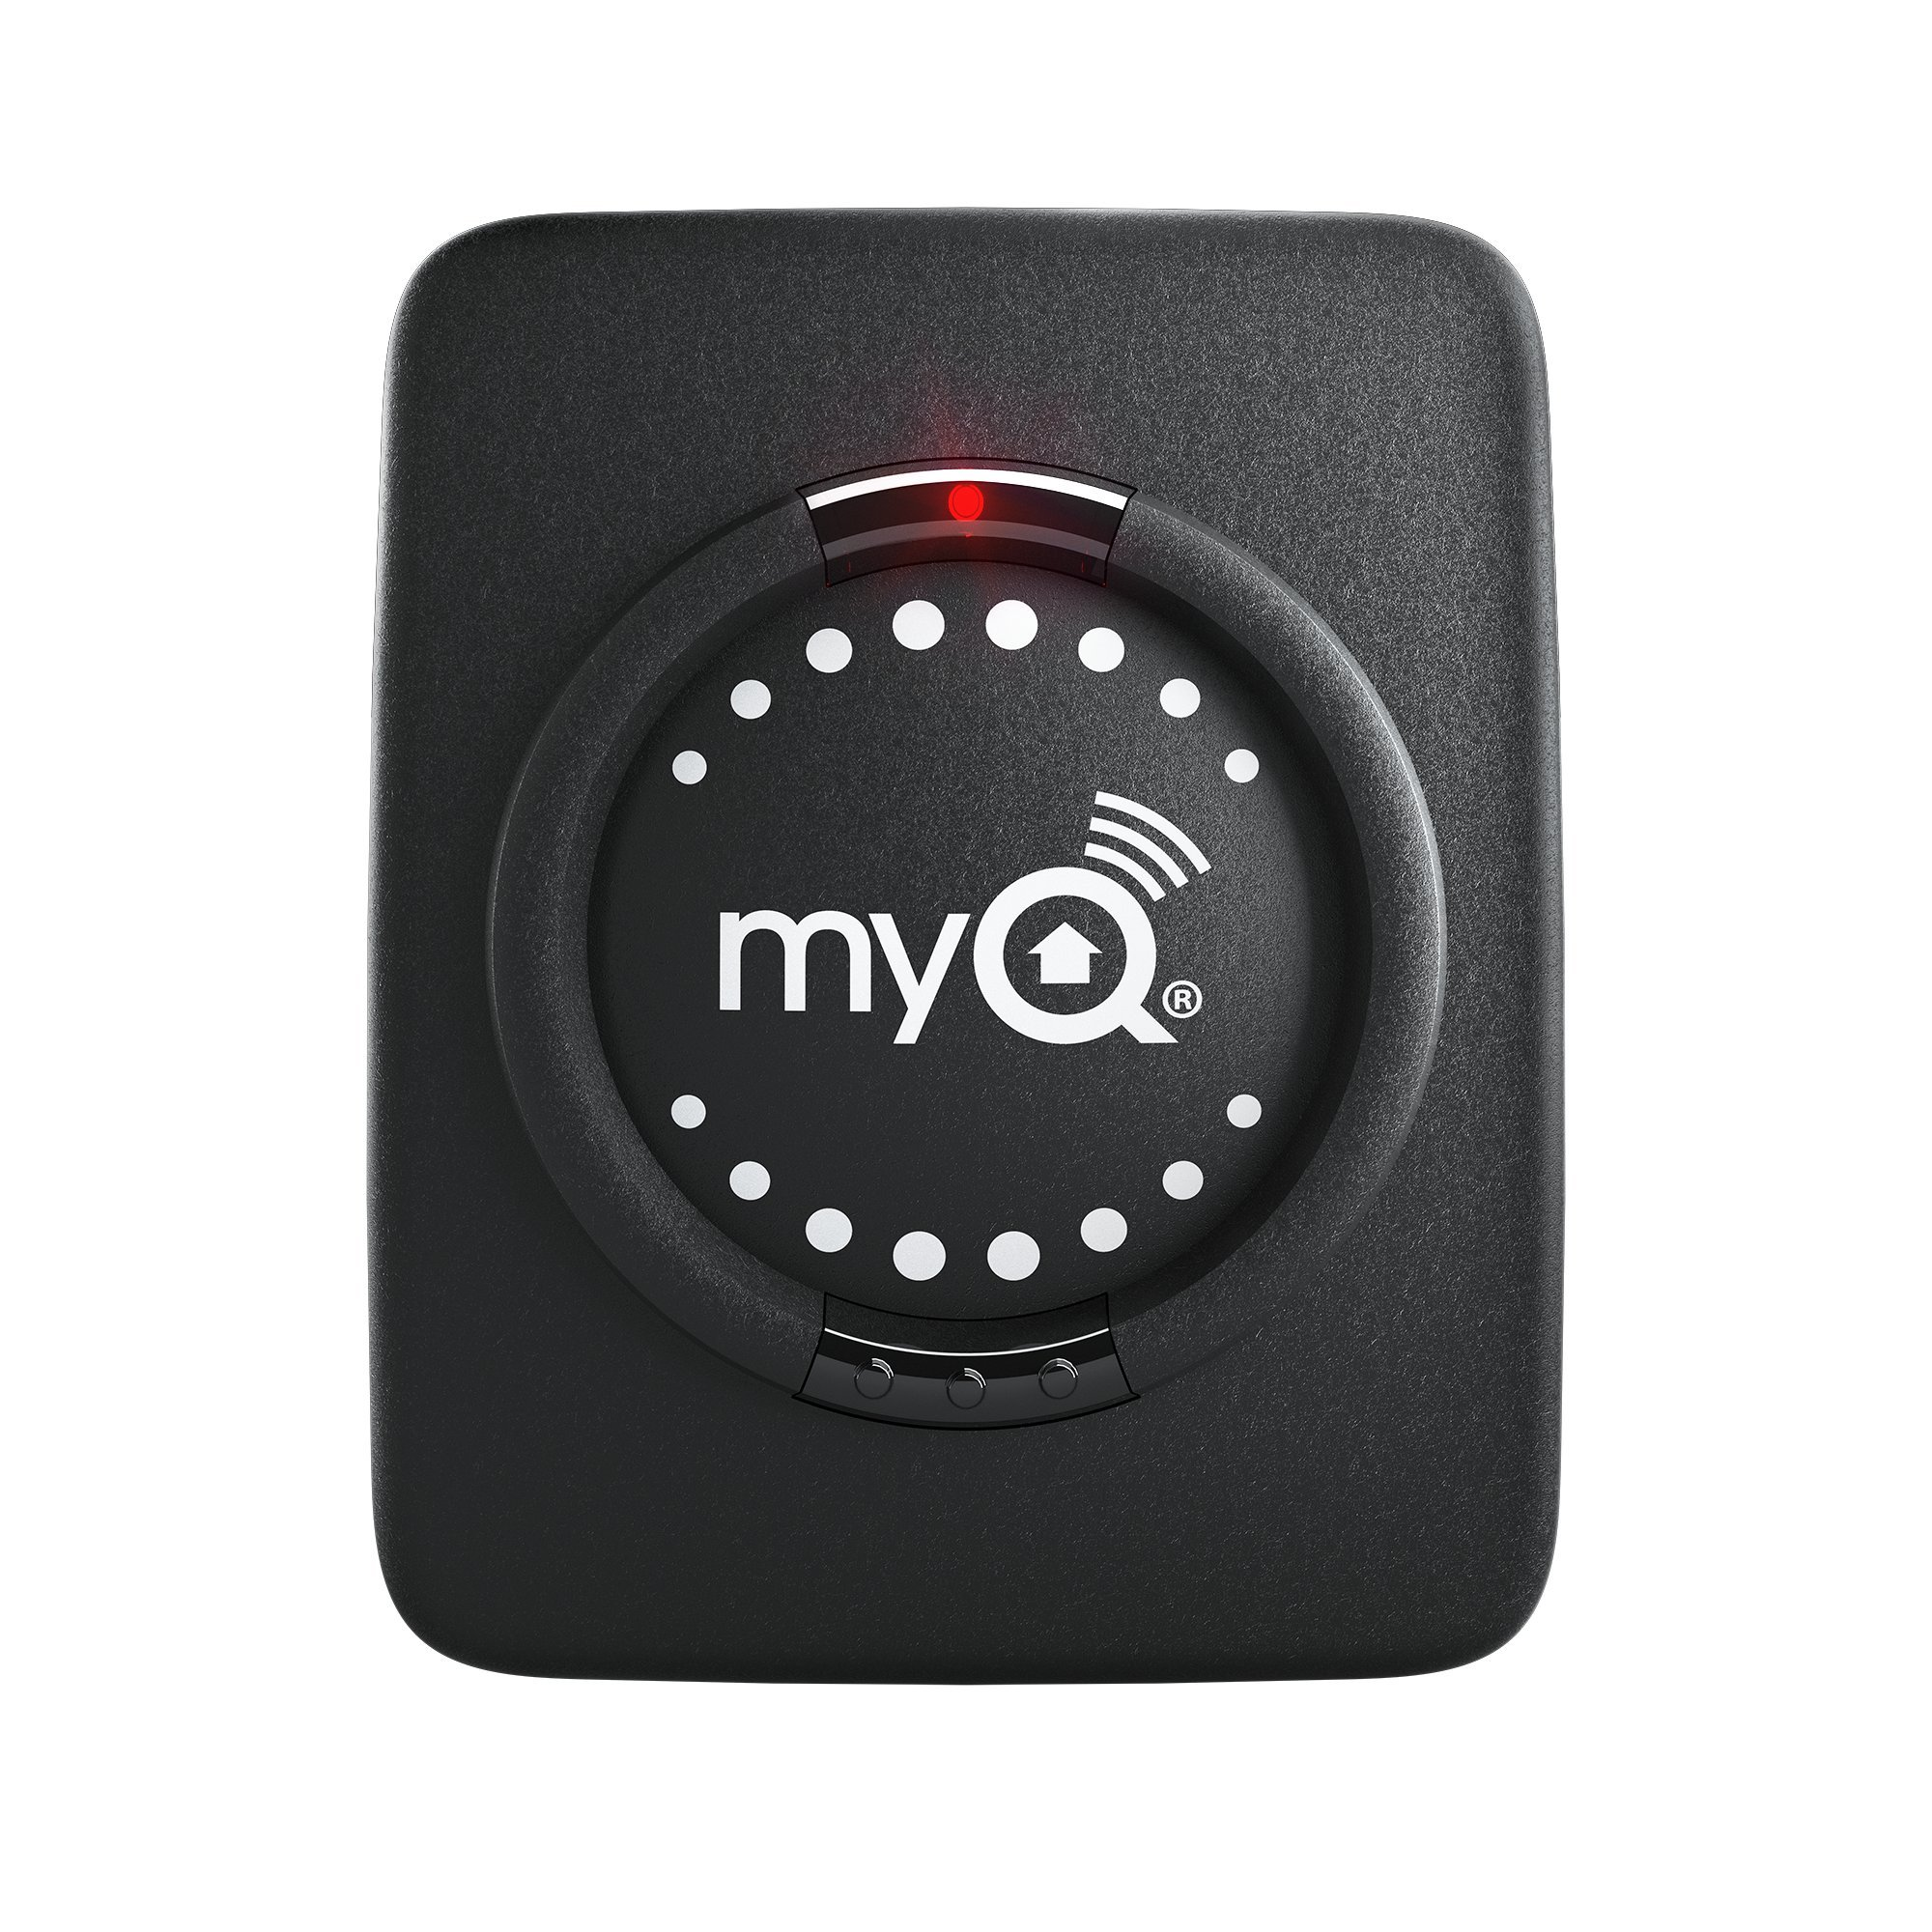 MyQ Smart Garage Hub Add-on Door Sensor (Works with MYQ-G0301 and 821LMB Only) by Chamberlain